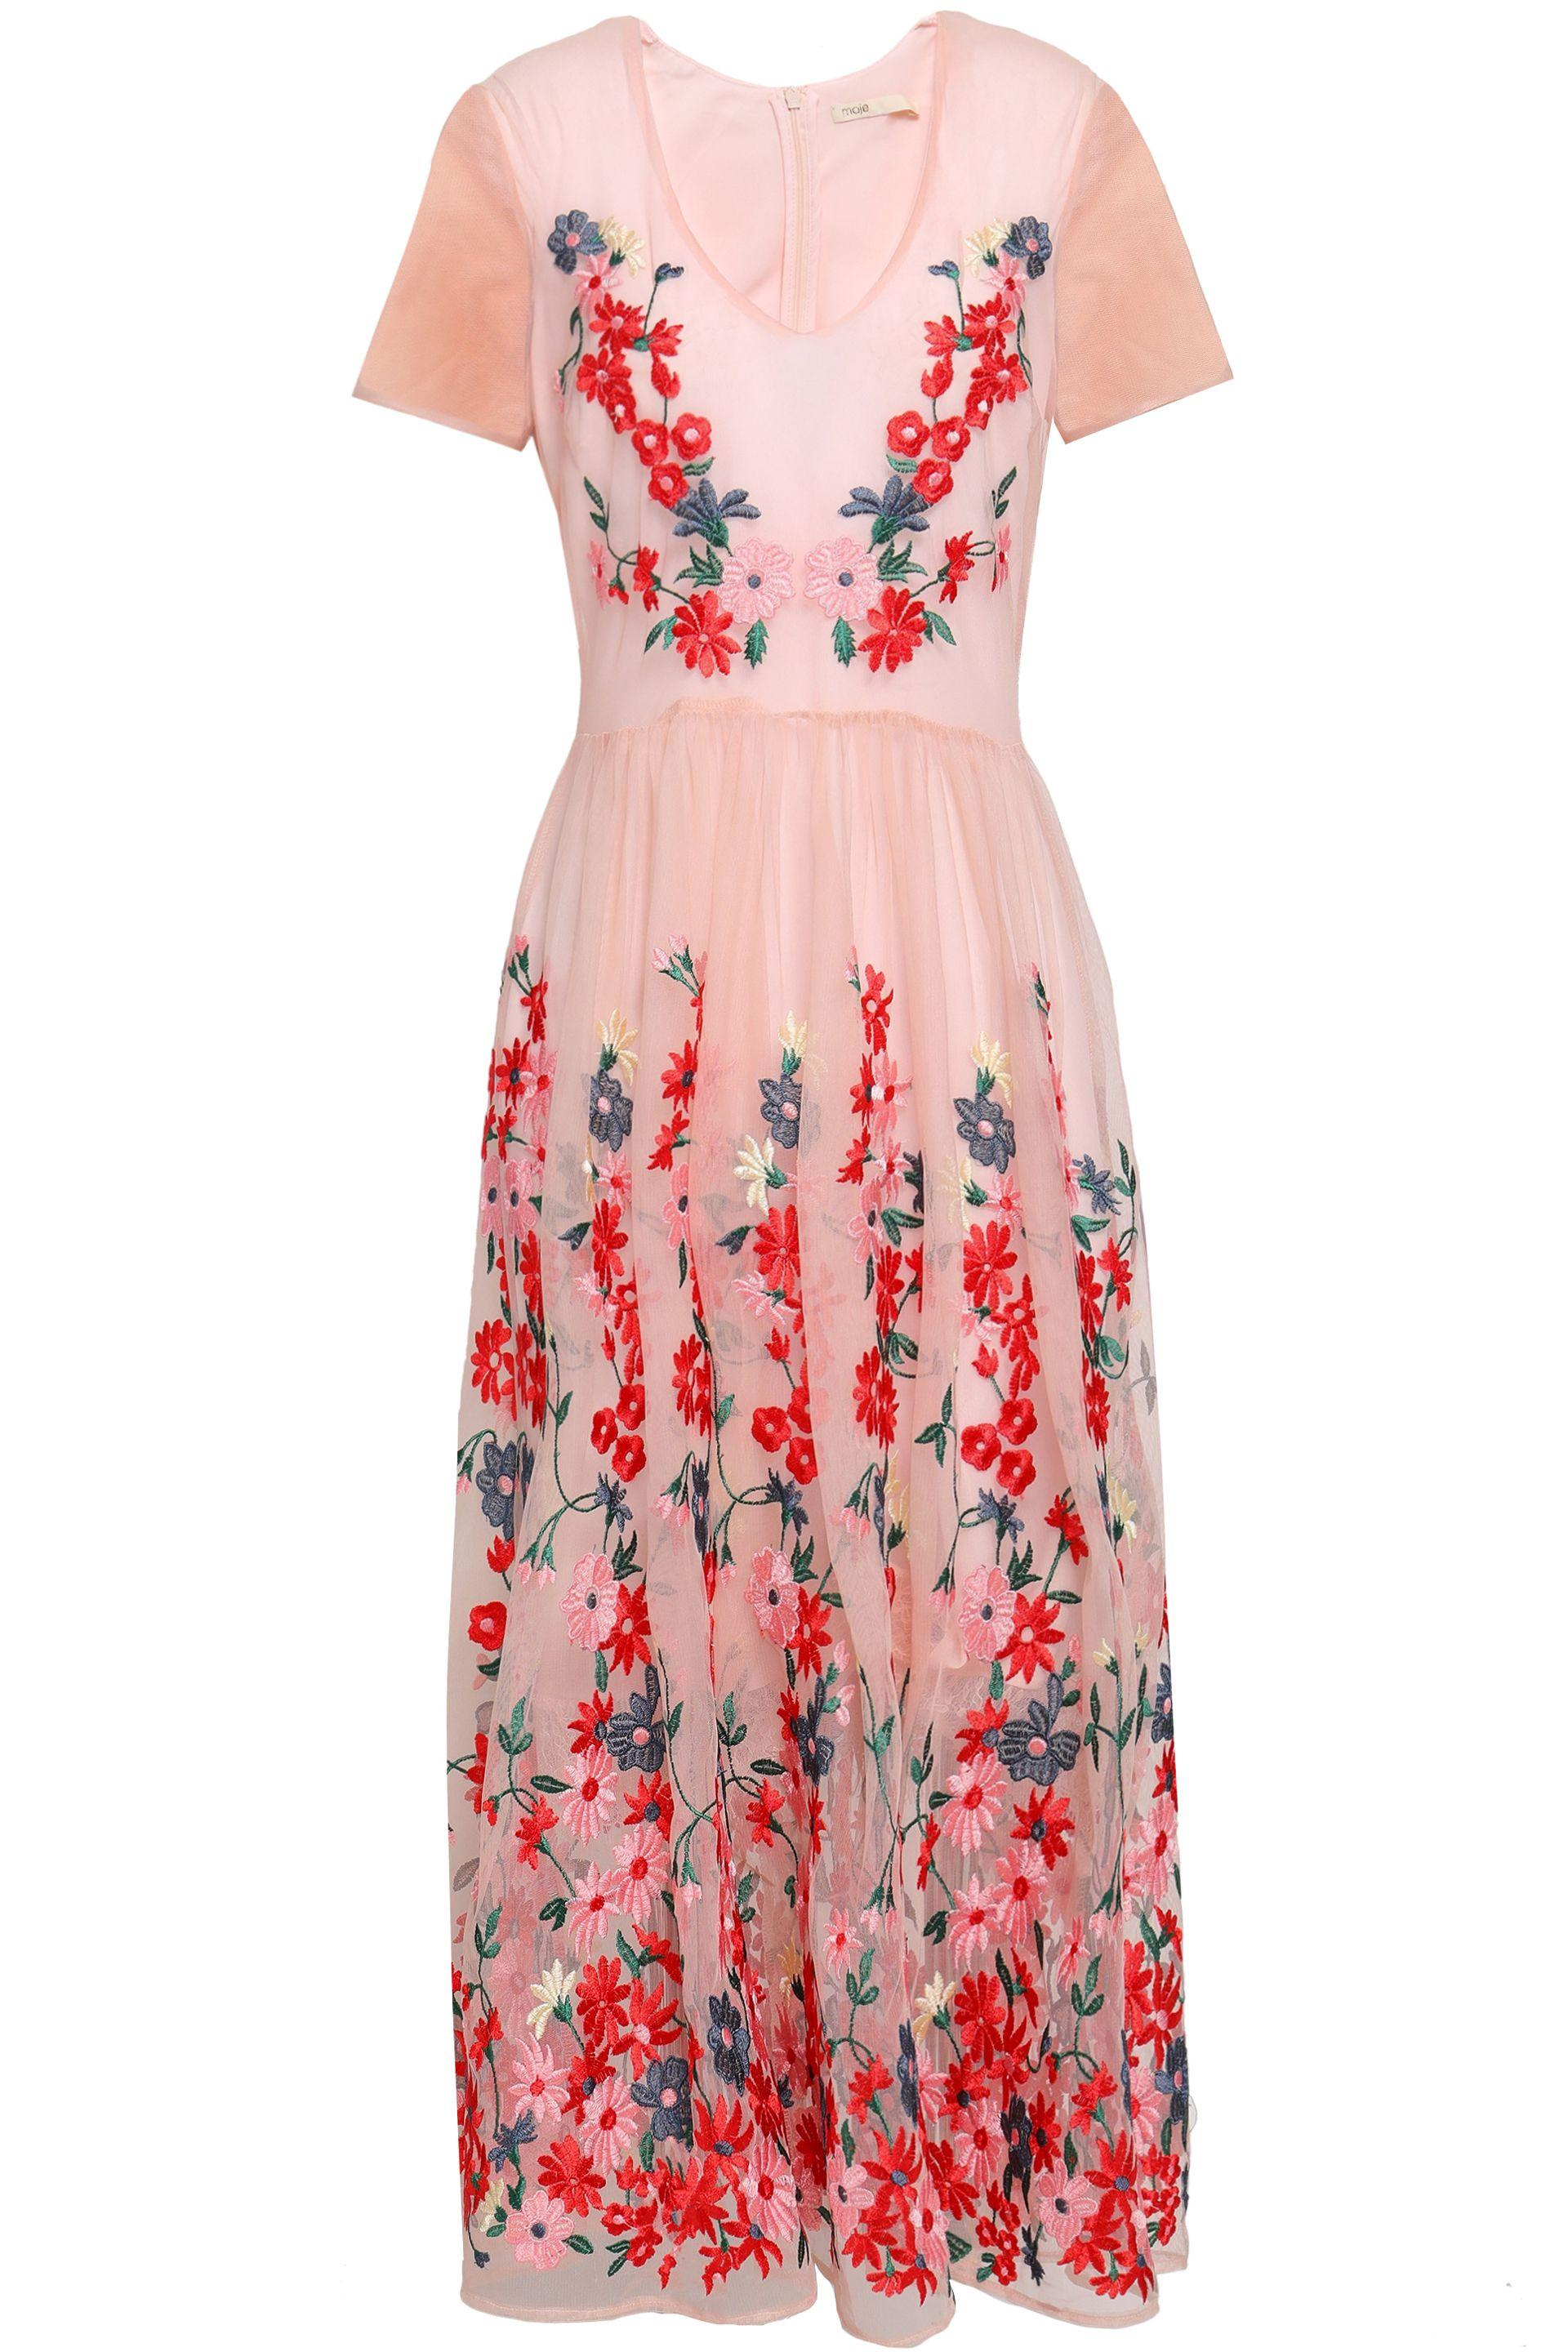 692816c9de Maje Embroidered Tulle Midi Dress Baby Pink in Pink - Lyst